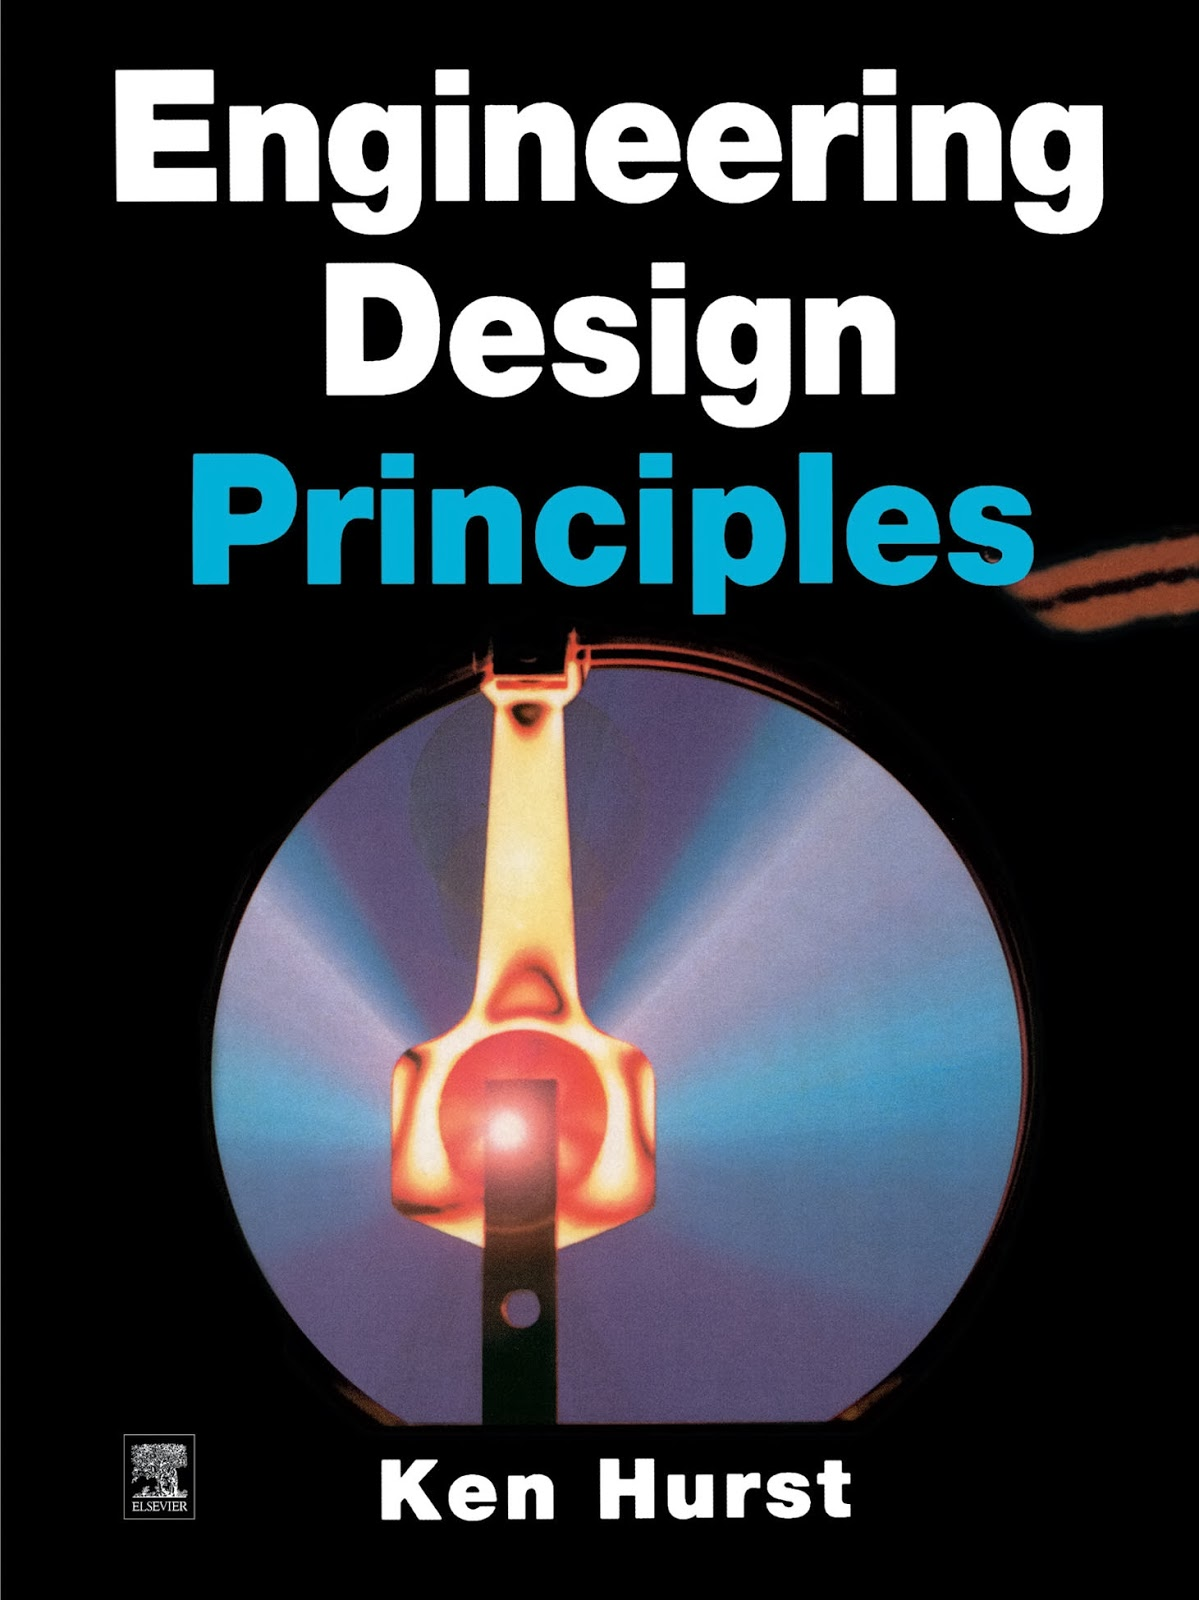 Book: Engineering Design Principles by Kenneth S. Hurst